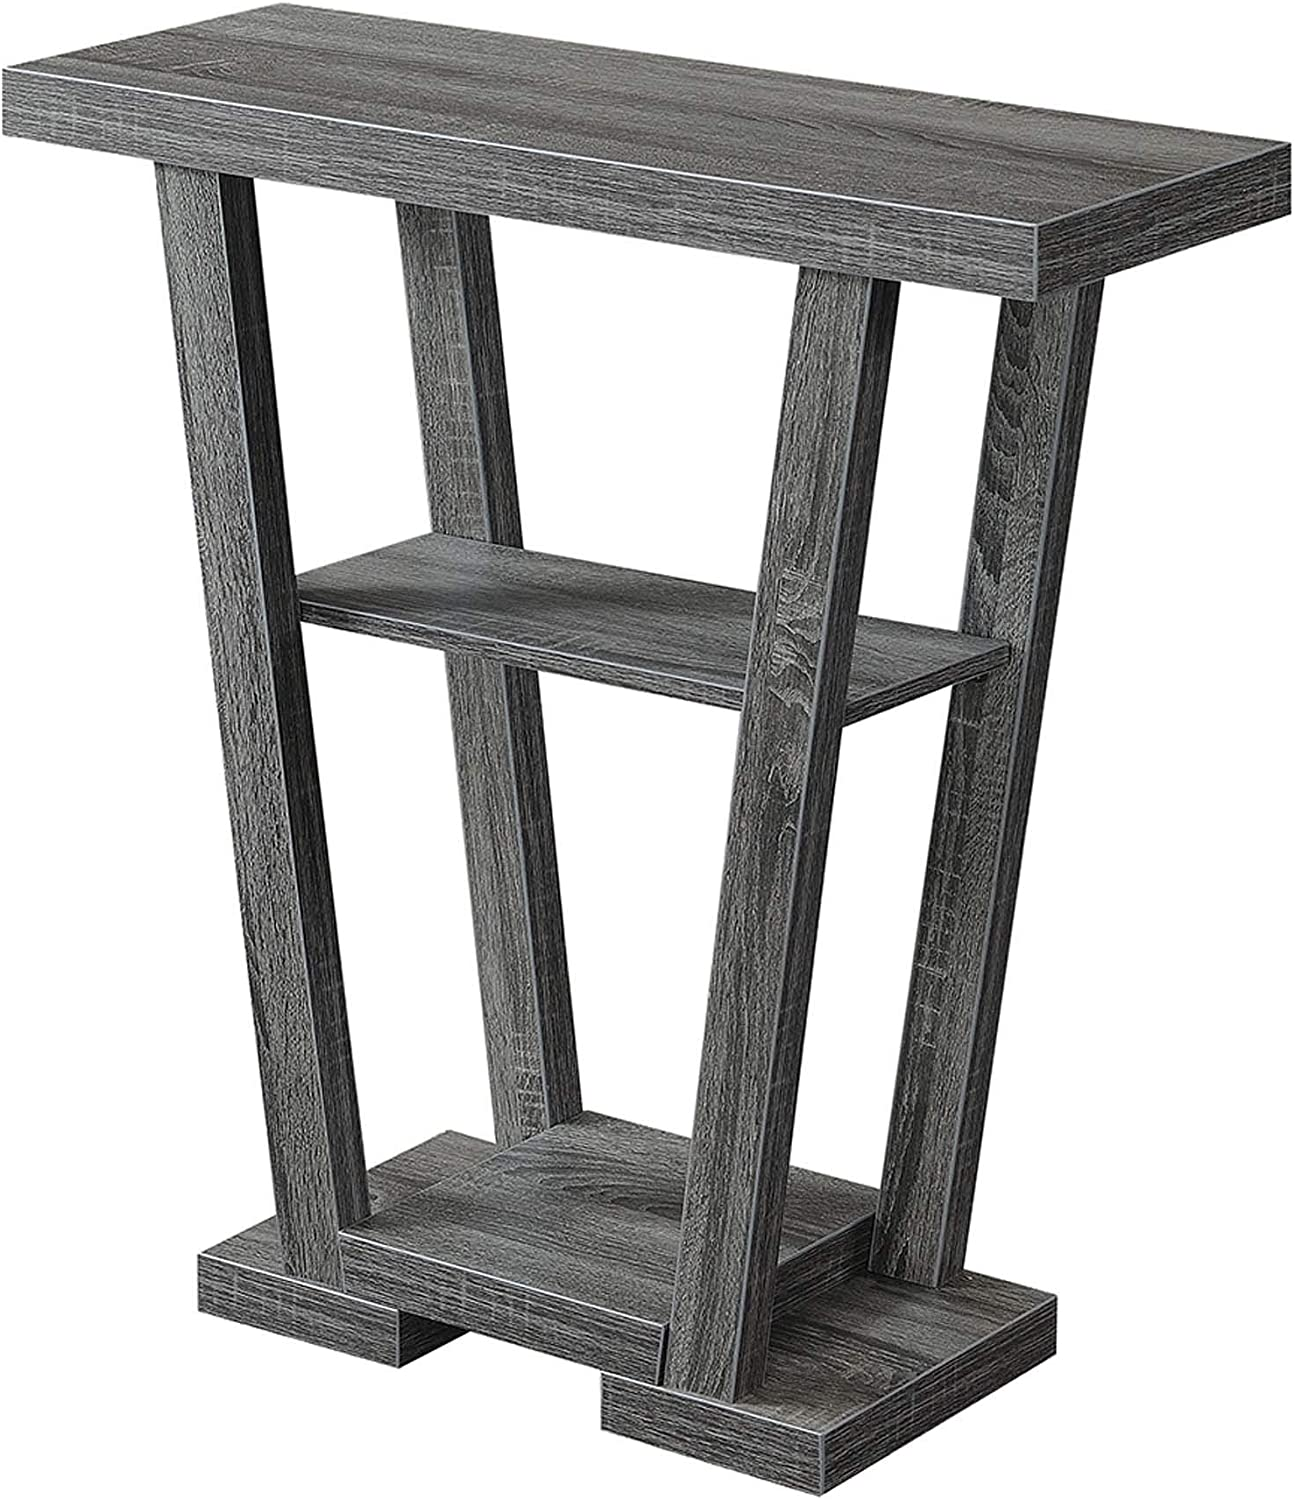 Convenience Concepts Newport V Console, Weathered Gray